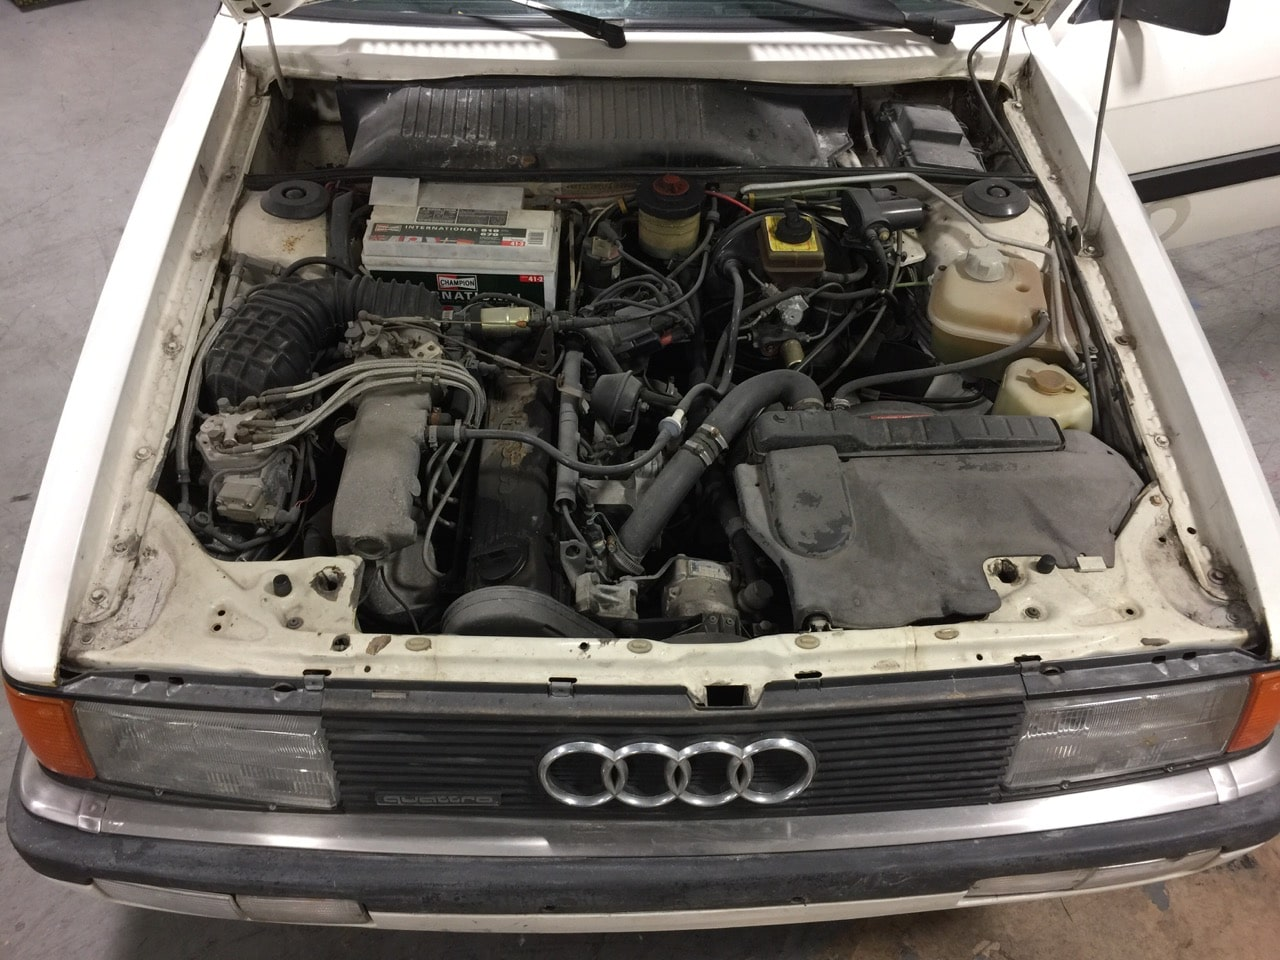 1985 Audi 4000s Engine The Car 4000cs Fuse Box Diagram 86 Ed S History Quattro Brock Yates Cannonball